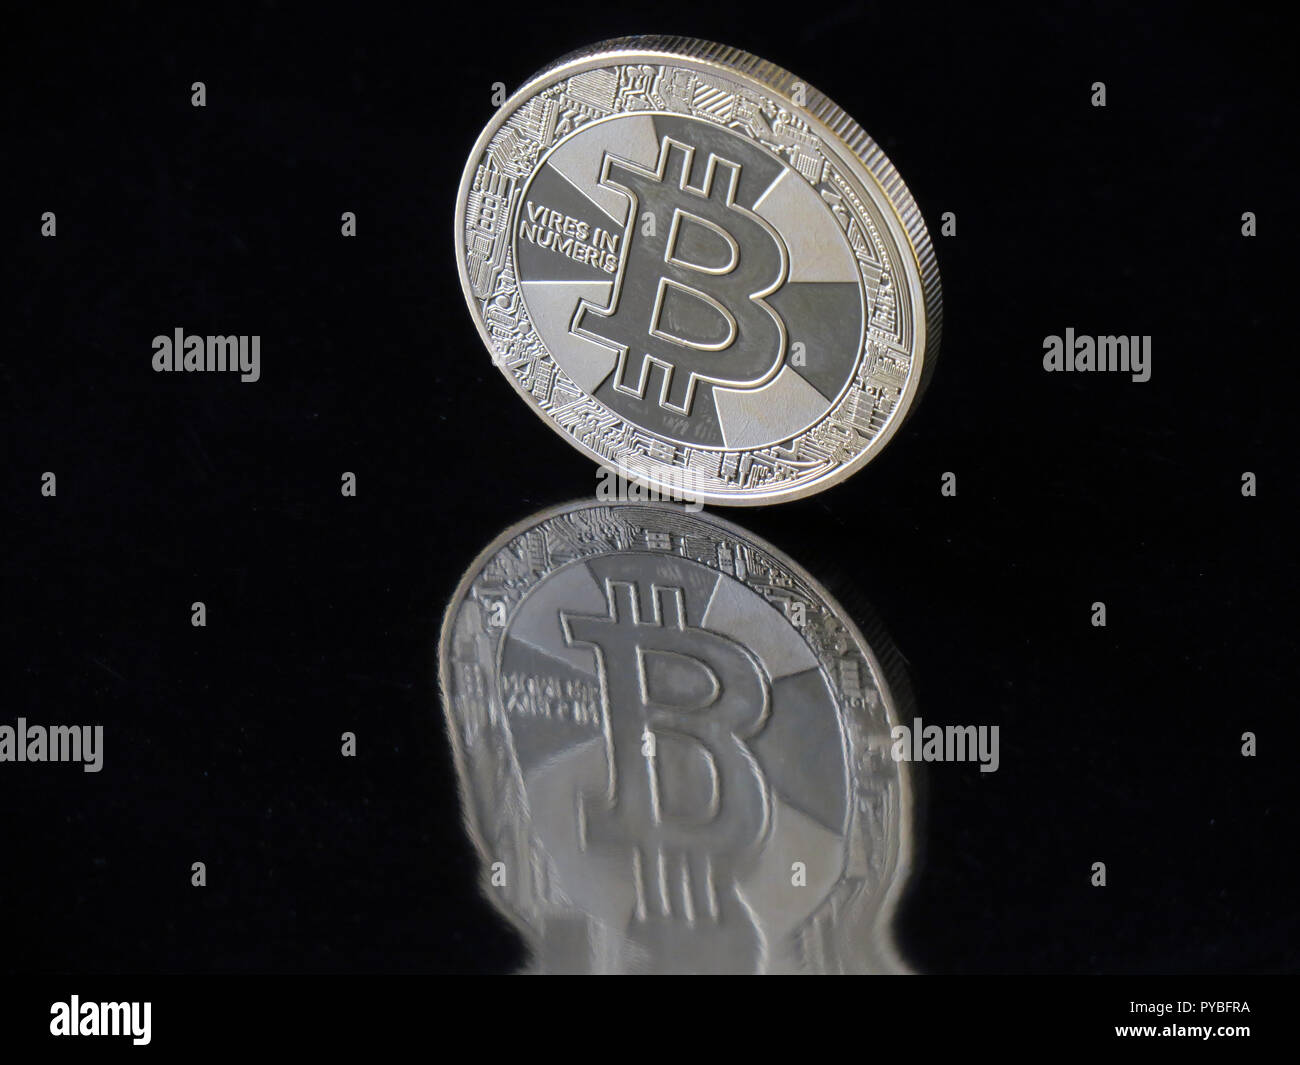 """Berlin, Germany. 30th Aug, 2018. 30 August 2018, Germany, Berlin: A Bitcoin coin with the imprint """"Vires in Numeris"""" (strength in numbers) reflects distorted in a black area. The digital currency has been around for ten years now and is based on blockchains (chains of data blocks) in which Bitcoin units are generated in mathematical operations on the computer. Credit: Soeren Stache/dpa-Zentralbild/ZB/dpa/Alamy Live News Stock Photo"""